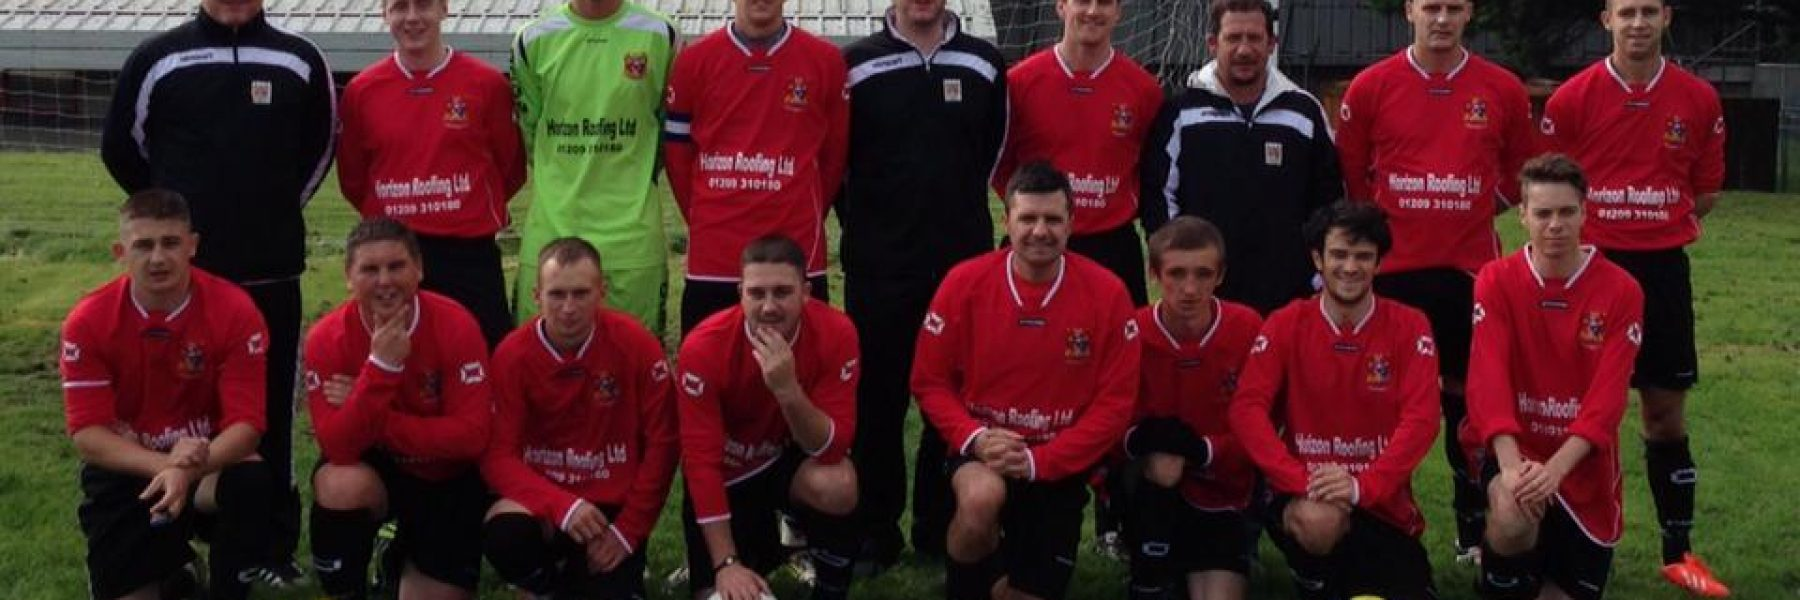 Horizon continue Sponsorship of local football club